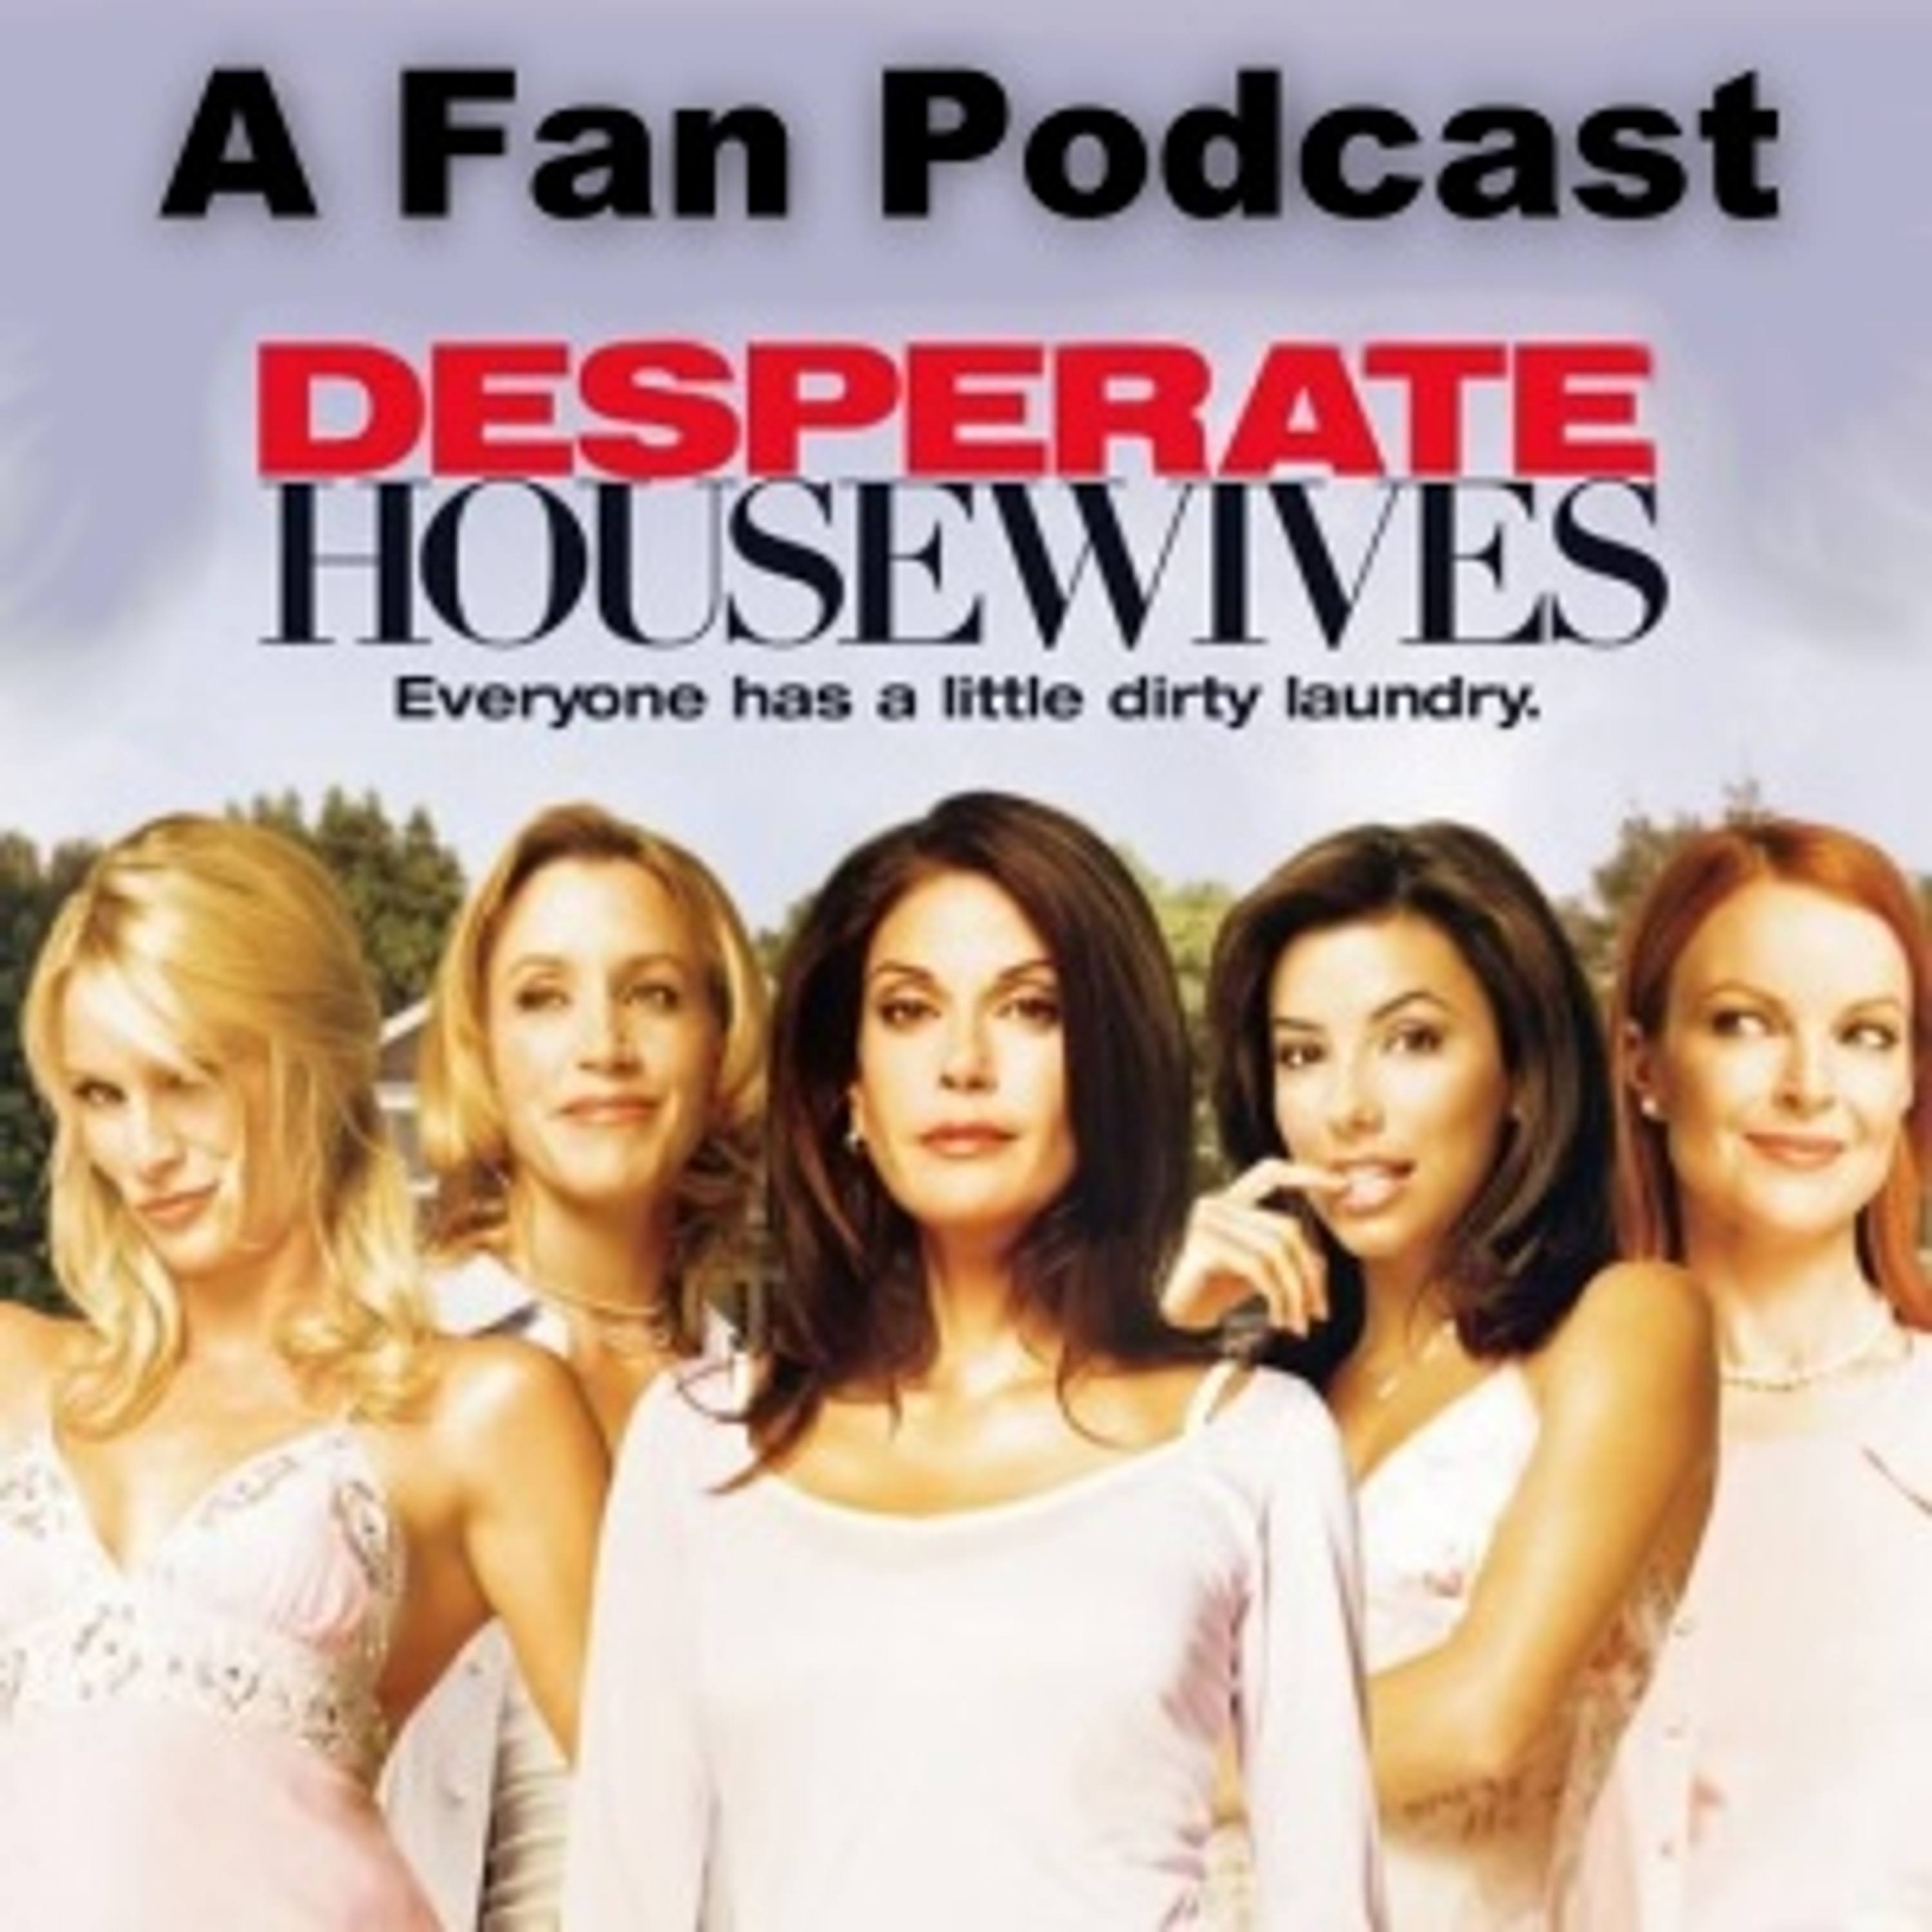 Desperate Housewives Fan Podcast